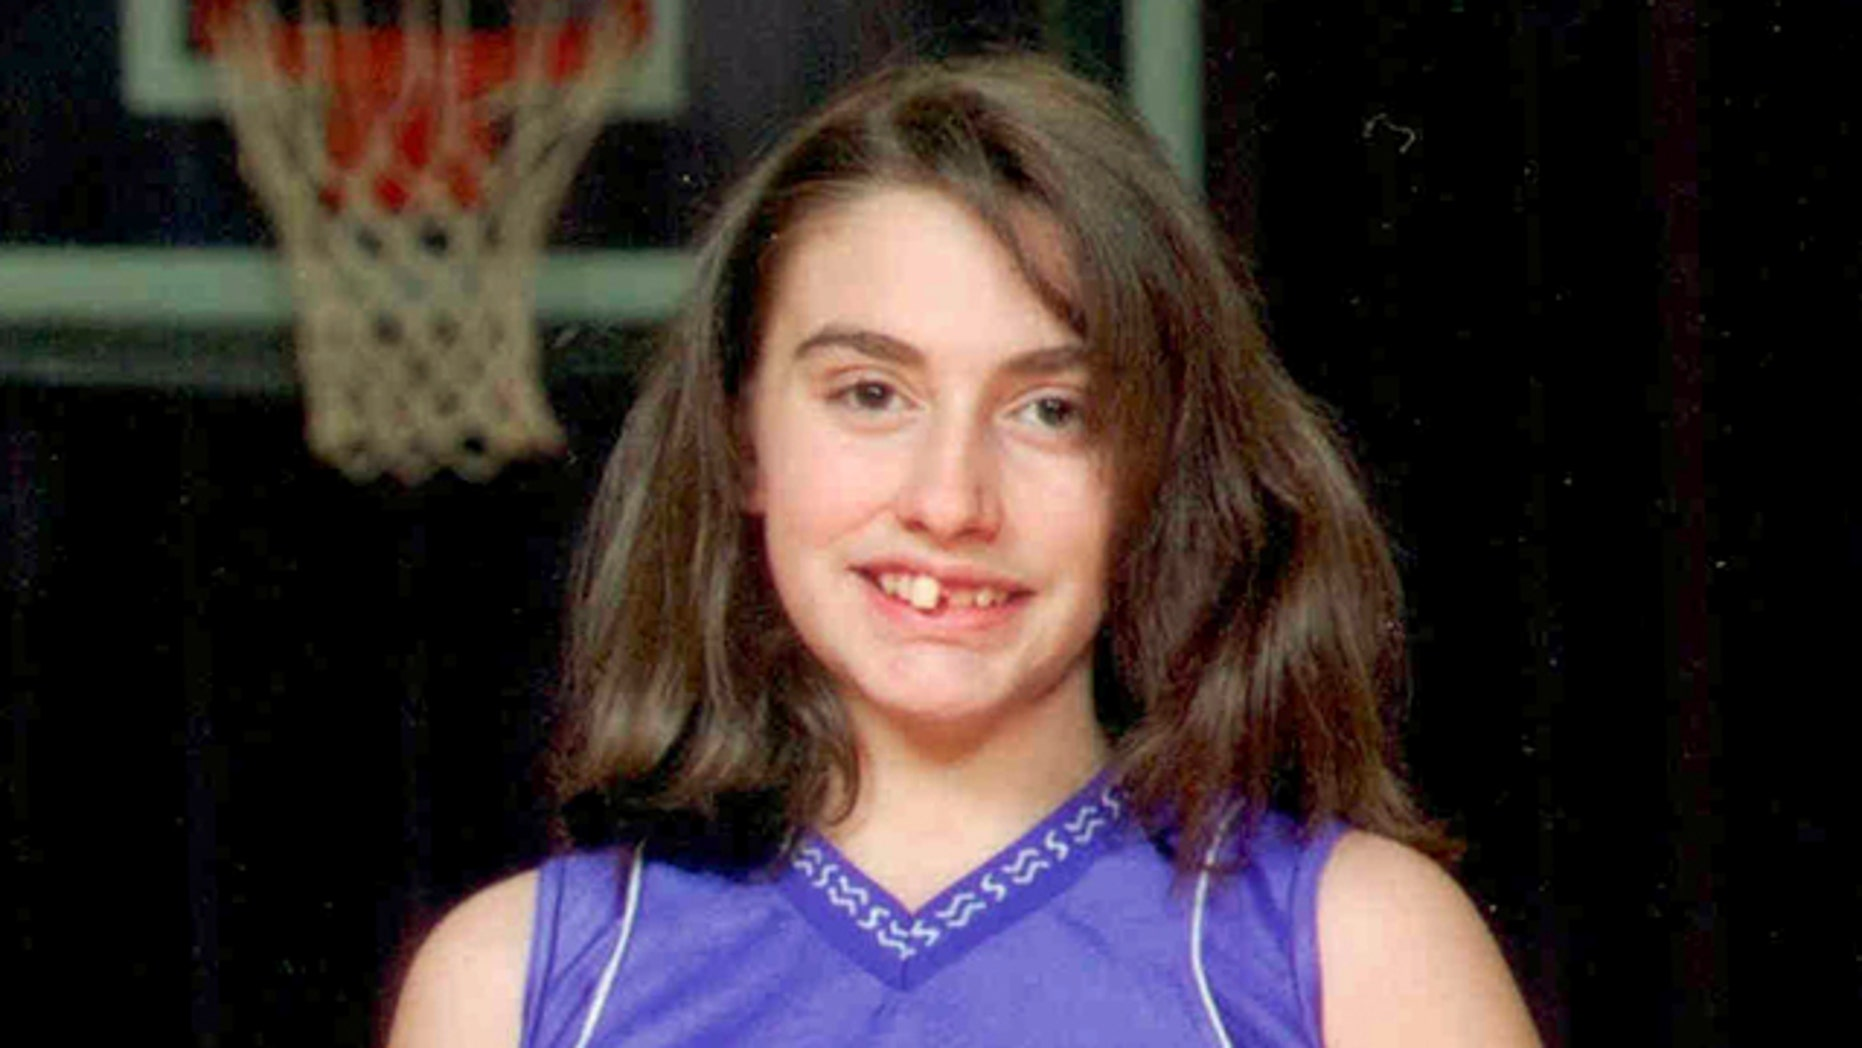 This 2010 photo provided by the New Hampshire State Police shows Celina Cass of West Stewartstown, N.H., in a basketball team uniform in Canann, Vt. Law enforcement officials are searching for Cass, who they say was last seen at her home the night of July 25th.